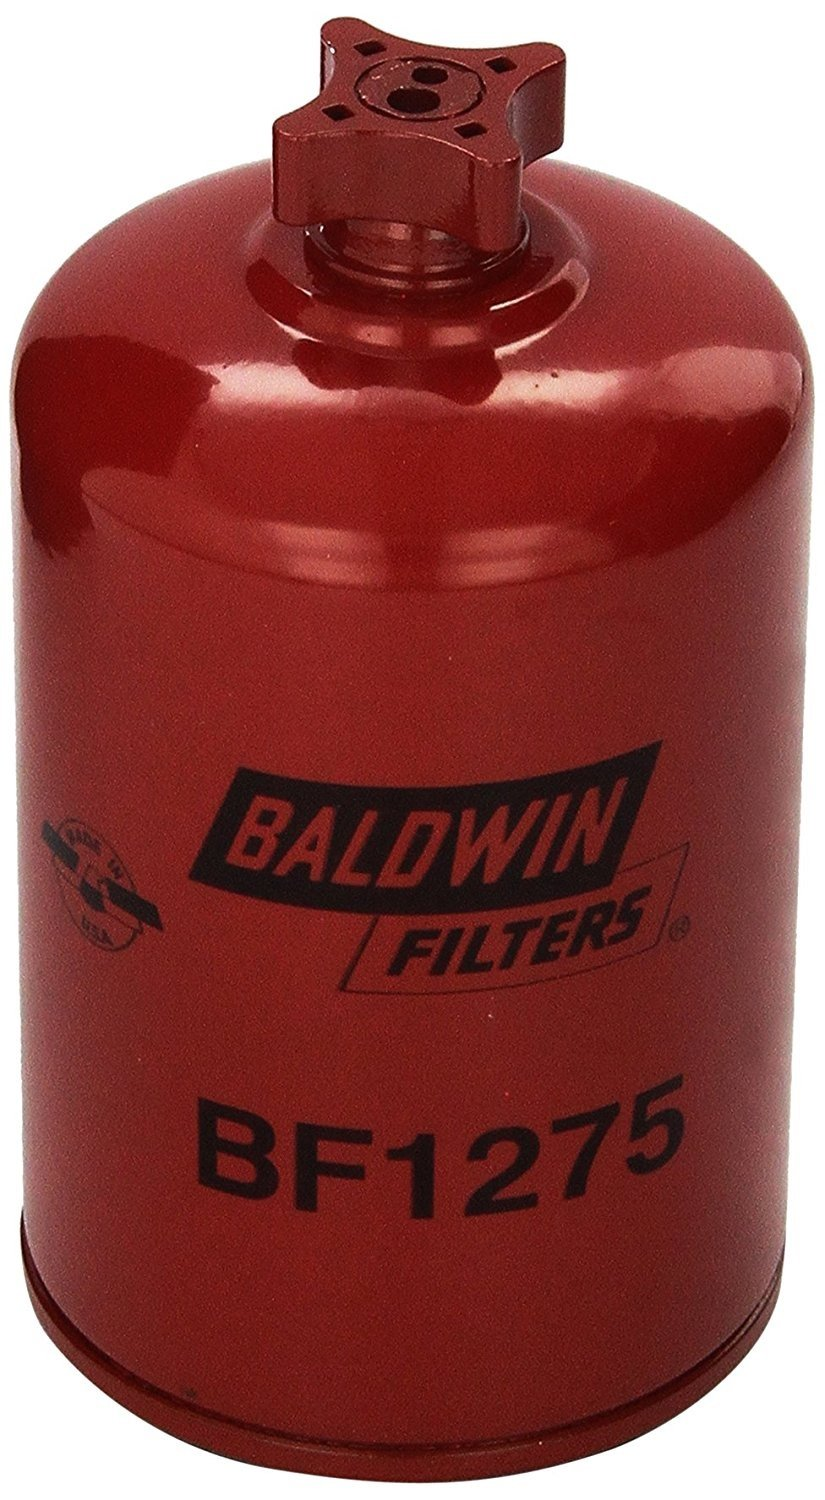 Baldwin BF1275 Heavy Duty Diesel Fuel Spin-On Filter (Pack of 2) by Baldwin